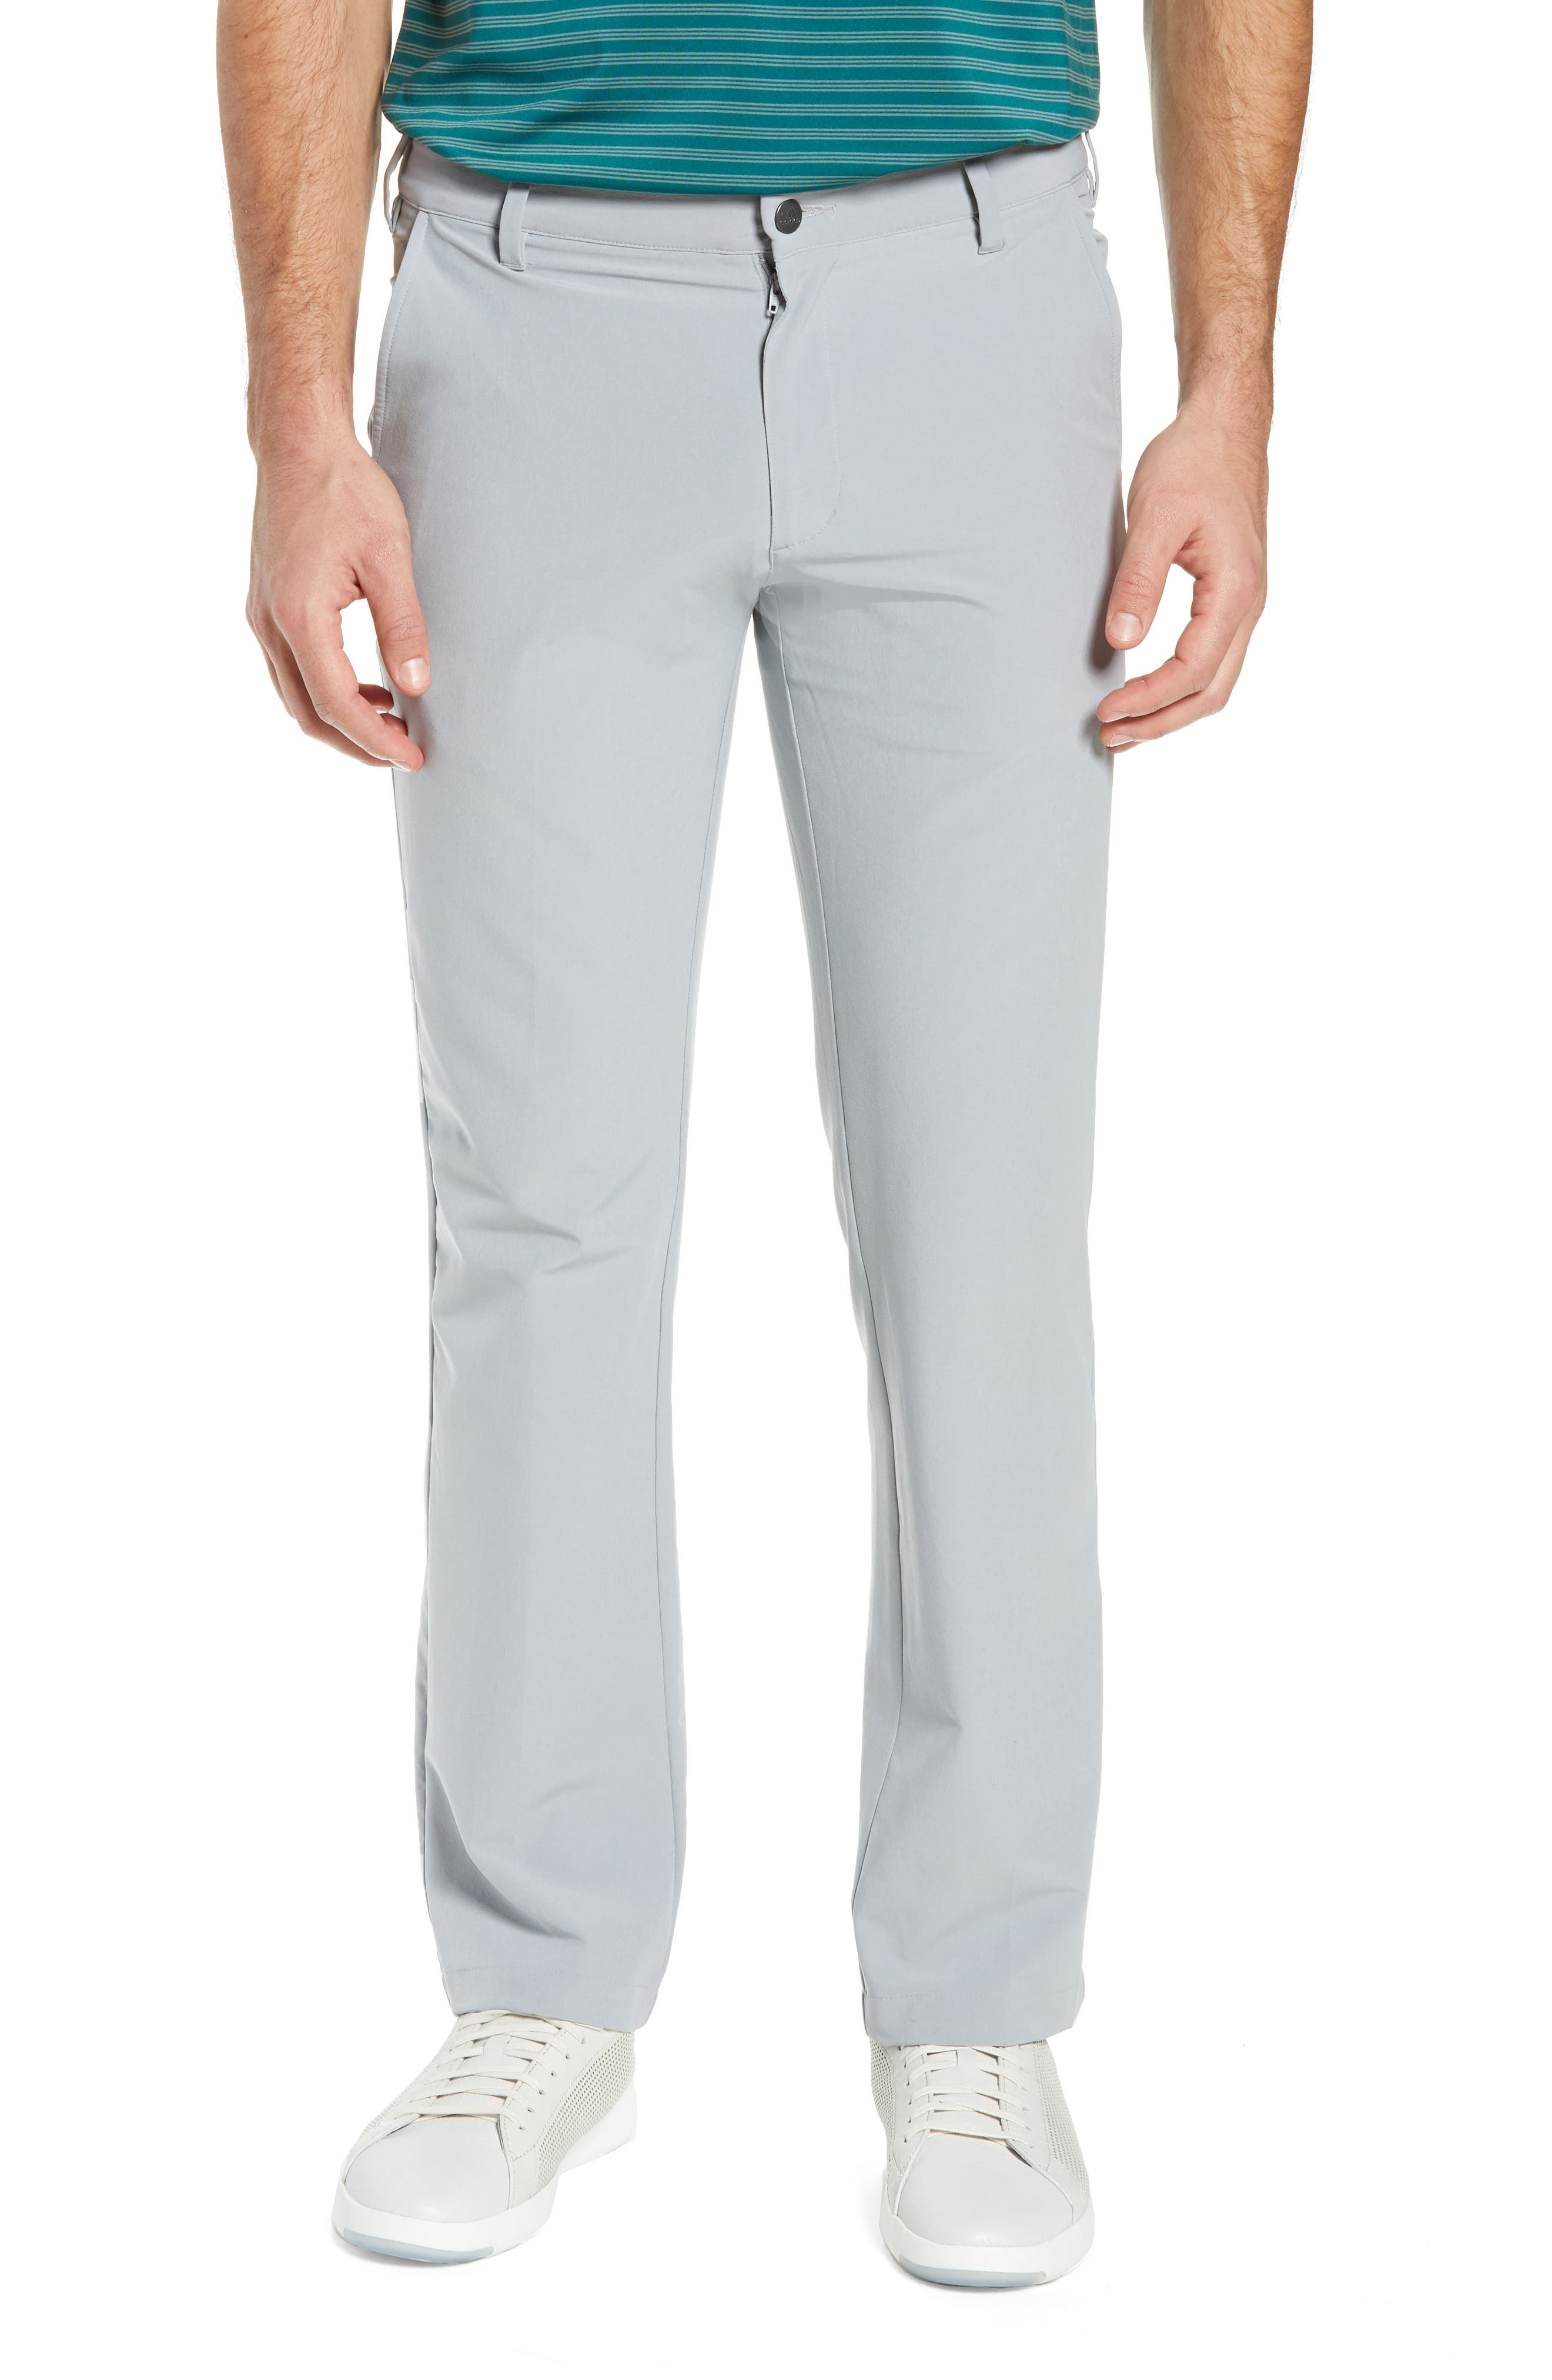 adidas Ultimate Regular Fit Golf Pants,                         Main,                         color, MID GREY